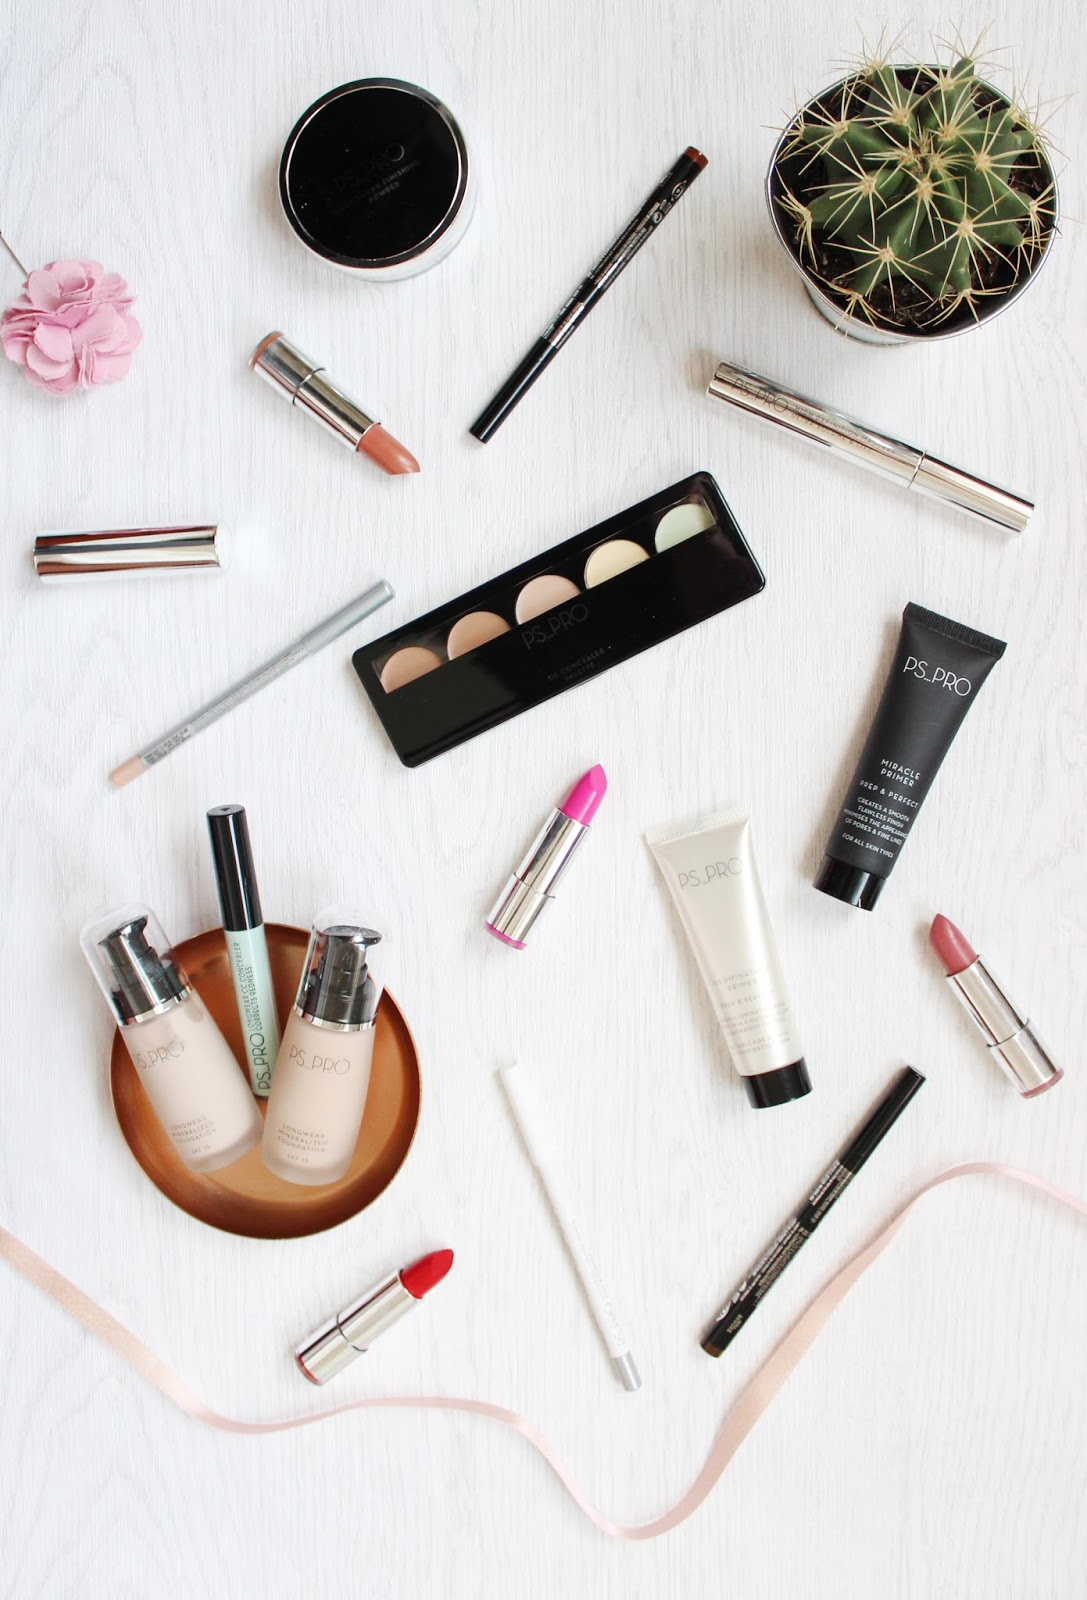 Primark PS...Pro makeup range review